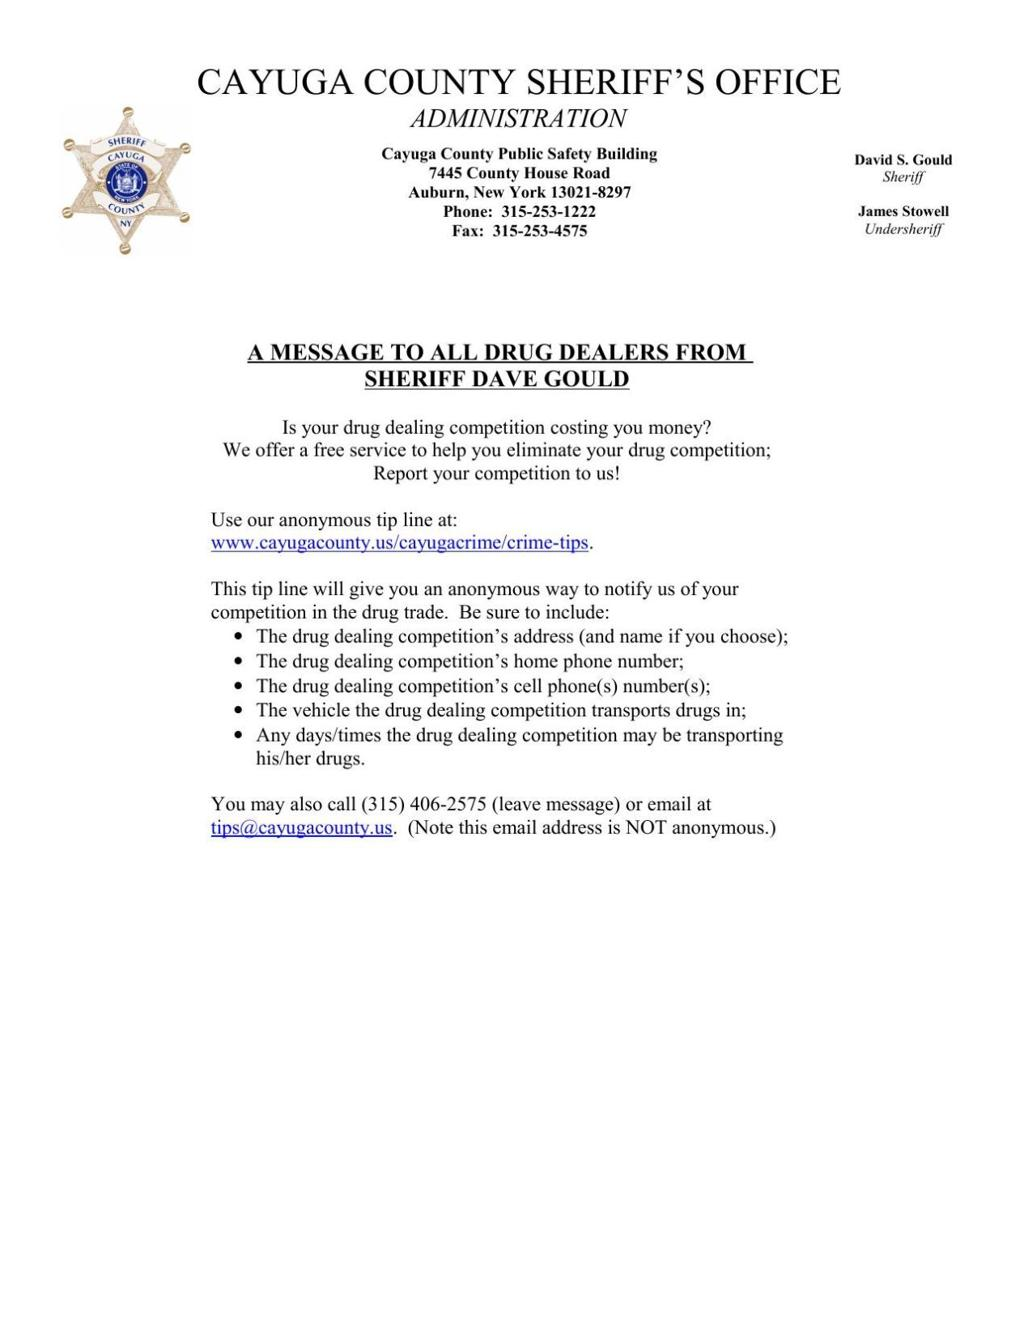 Cayuga County Sheriff's Office to drug dealers: Turn your